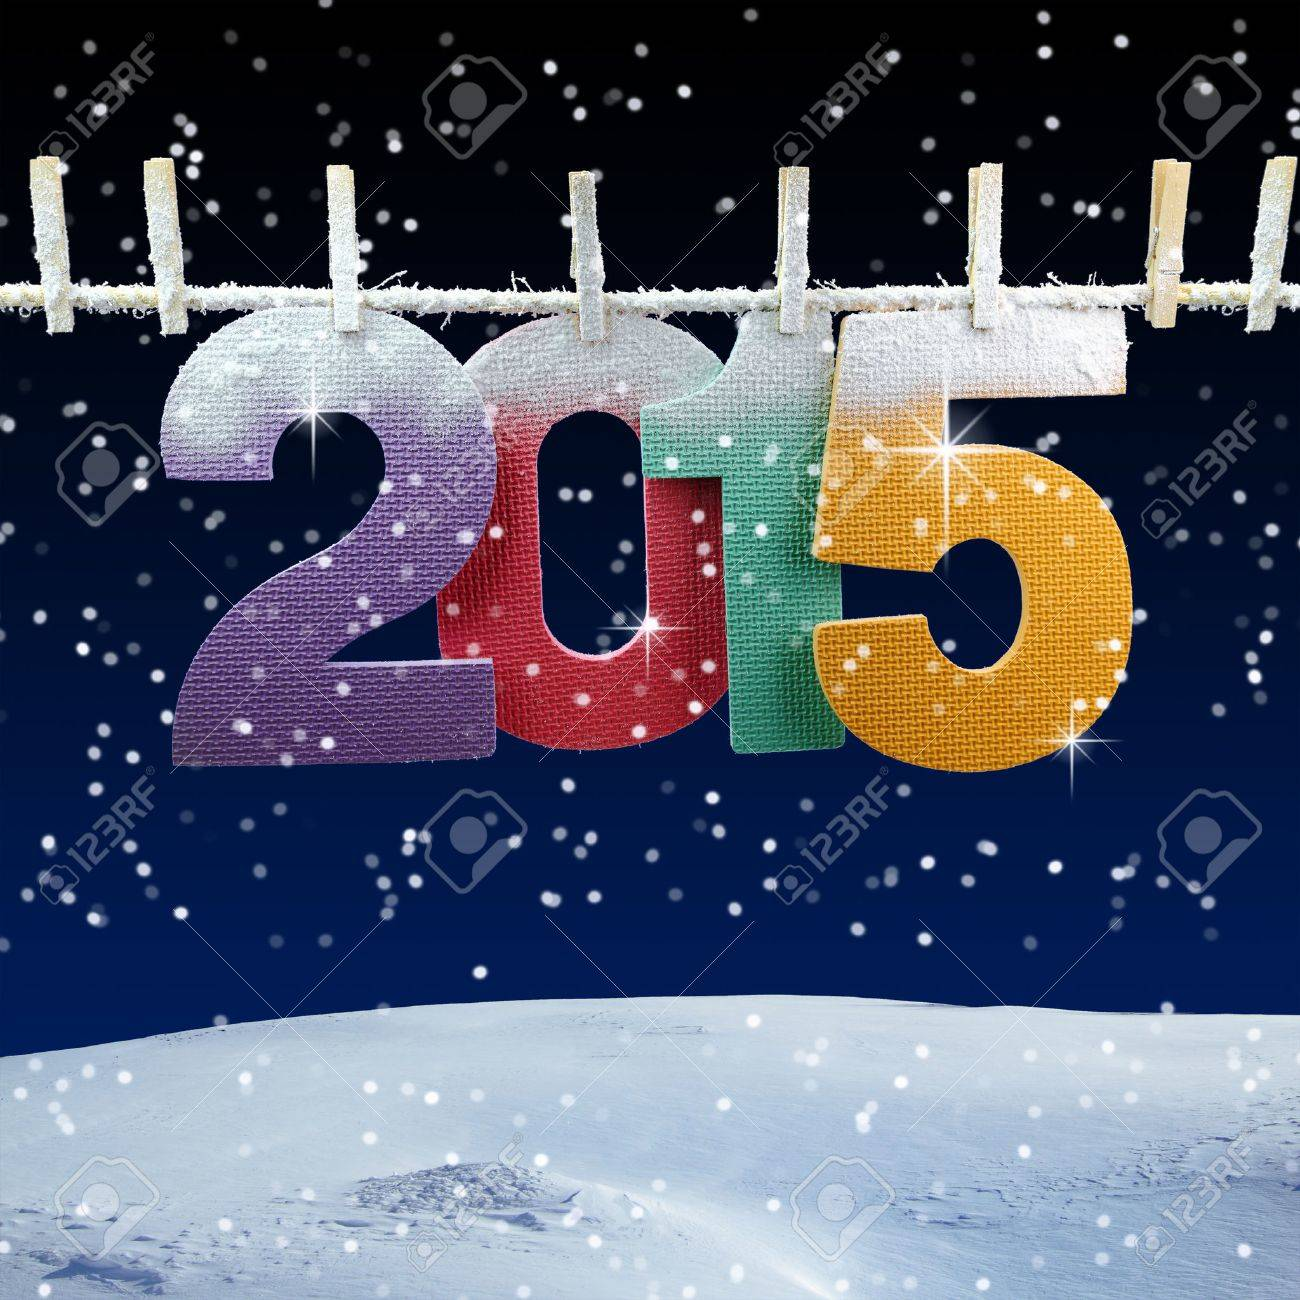 Number 2015 hanging on a clothesline in a night wintry background Stock Photo - 29112537